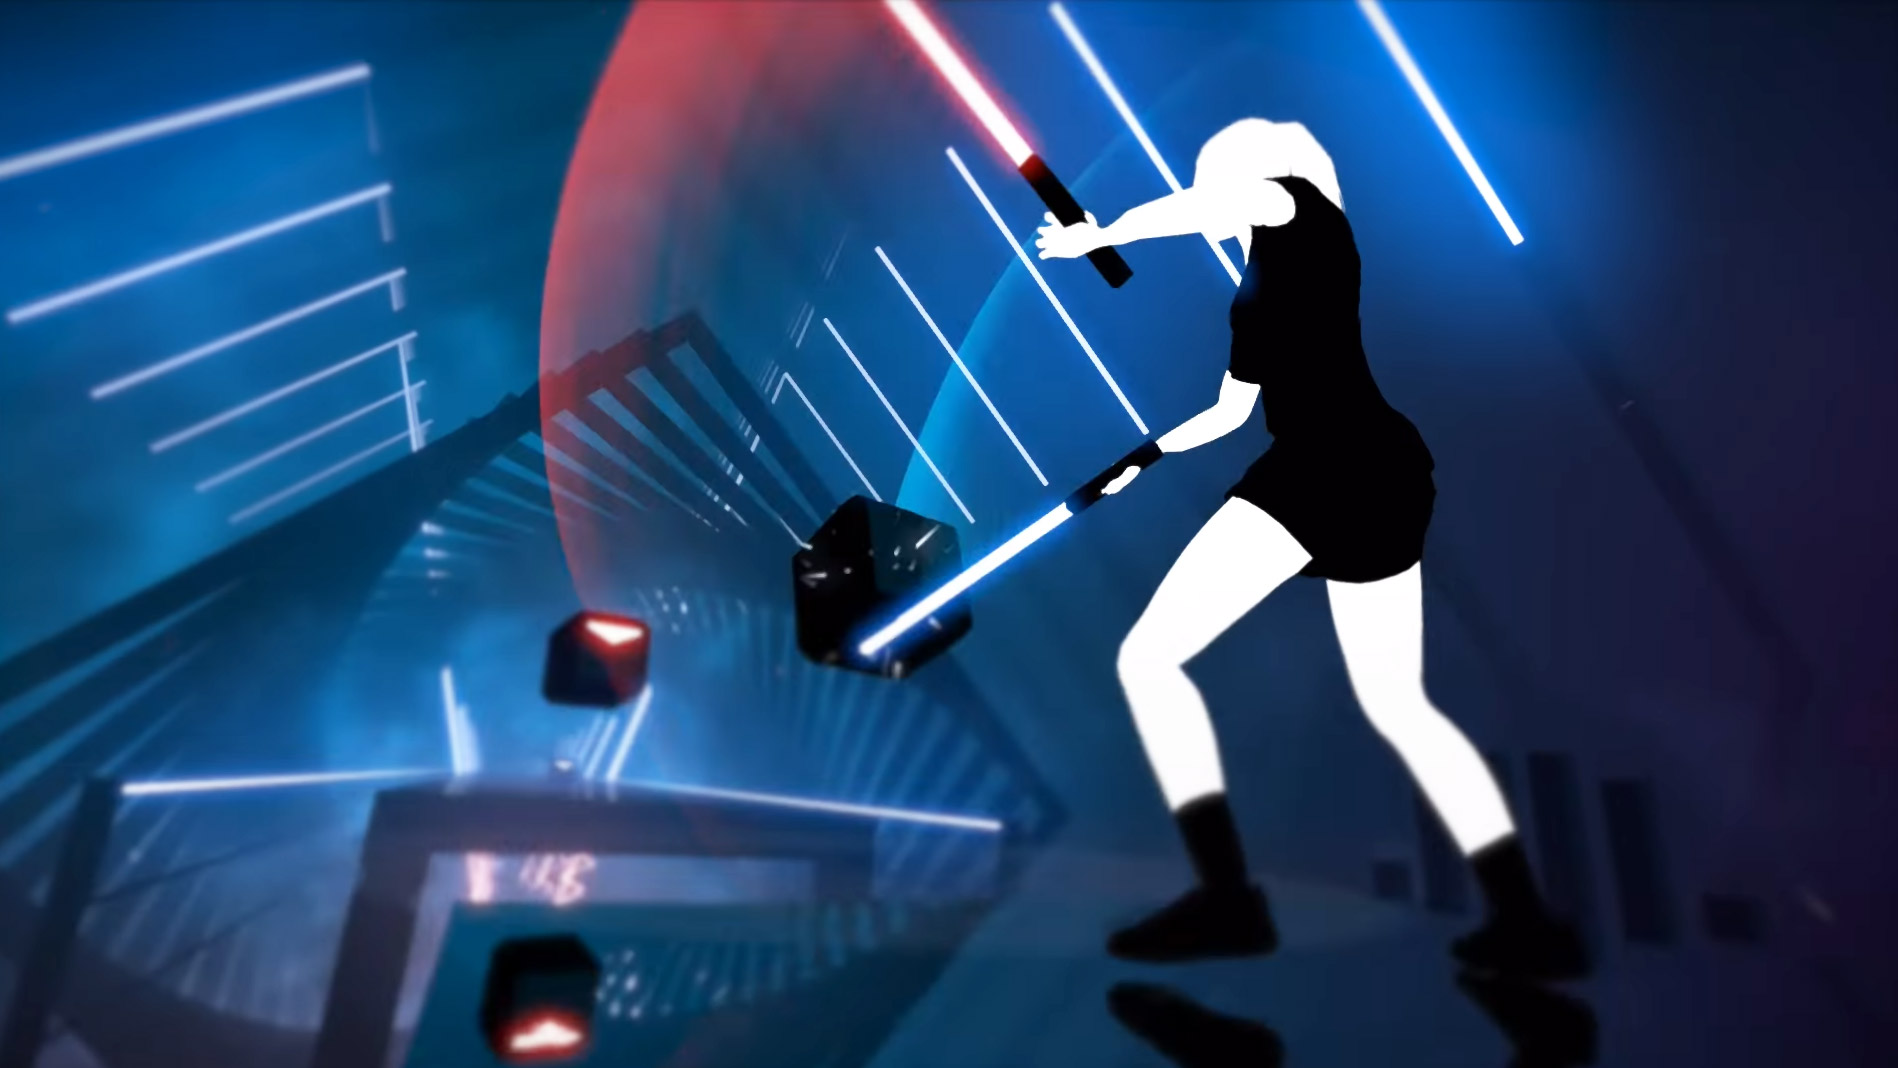 VR Event Booth Games: Beatsaber Review